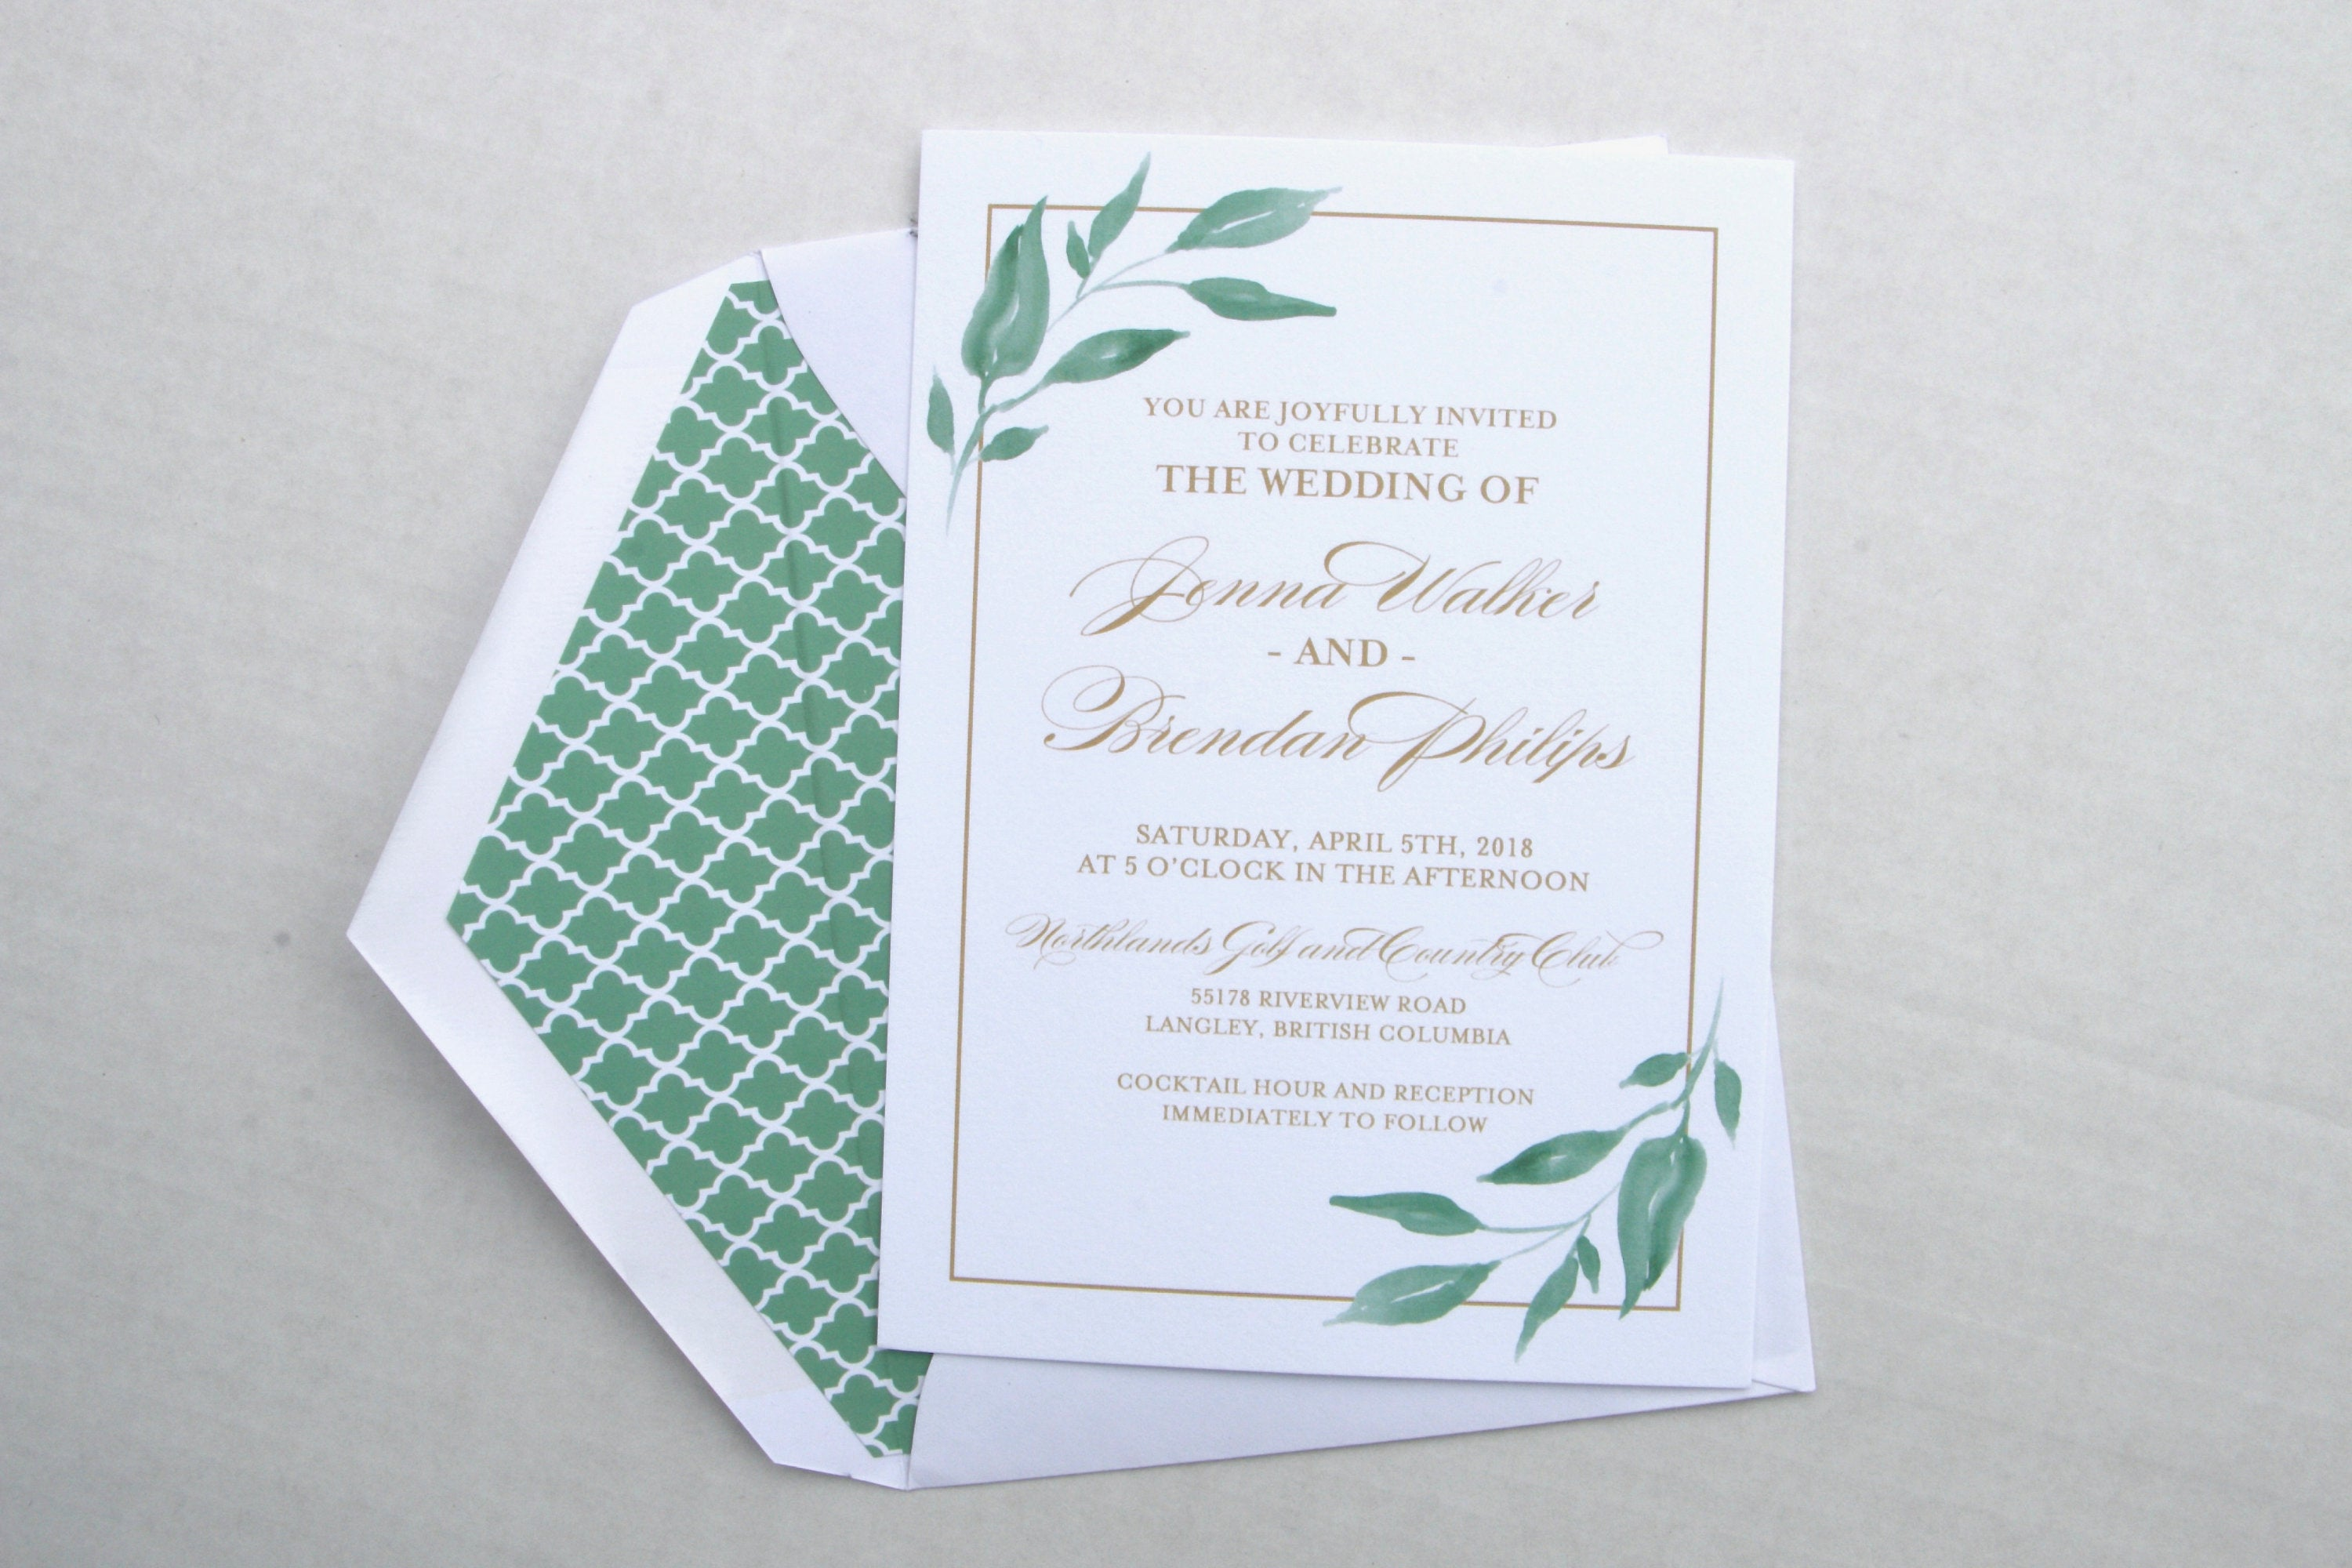 Greenery Wedding Invitations, Greenery Leaves & Gold, Printed ...